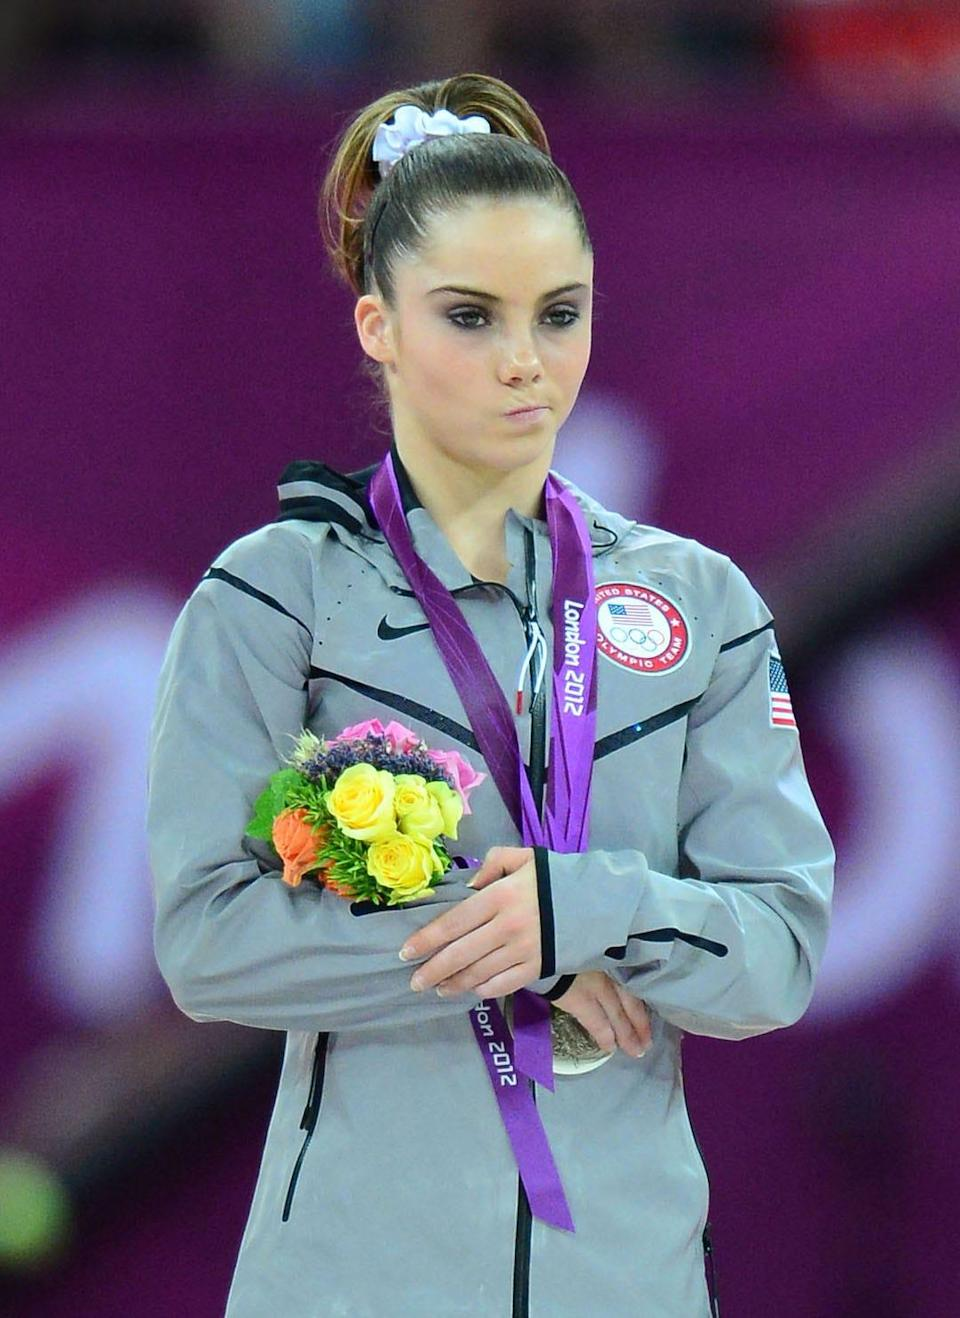 McKayla Maroney reacts on the podium after winning the silver medal in the vault competition at North Greenwich Arena in the London 2012 Olympic Games. Her reaction ended up being on of the most viral moments of the games.